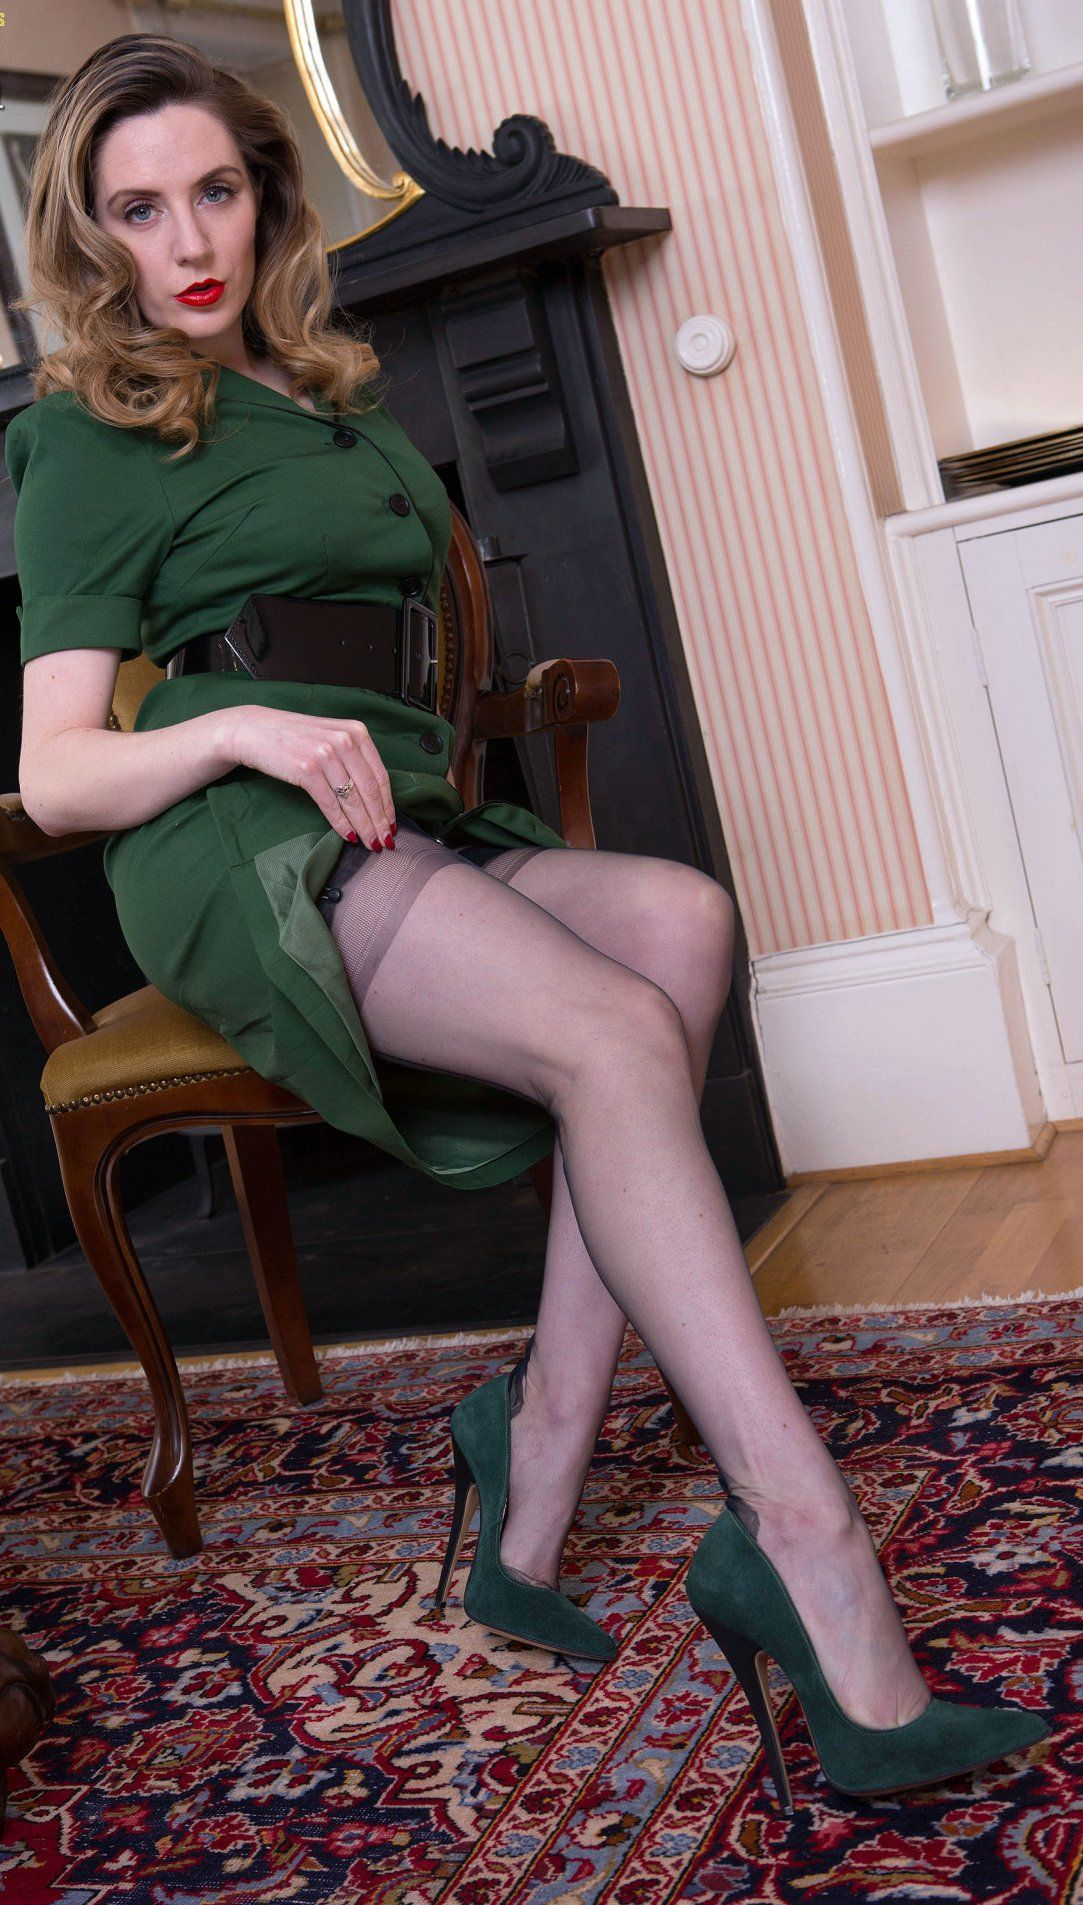 Women posing in stockings